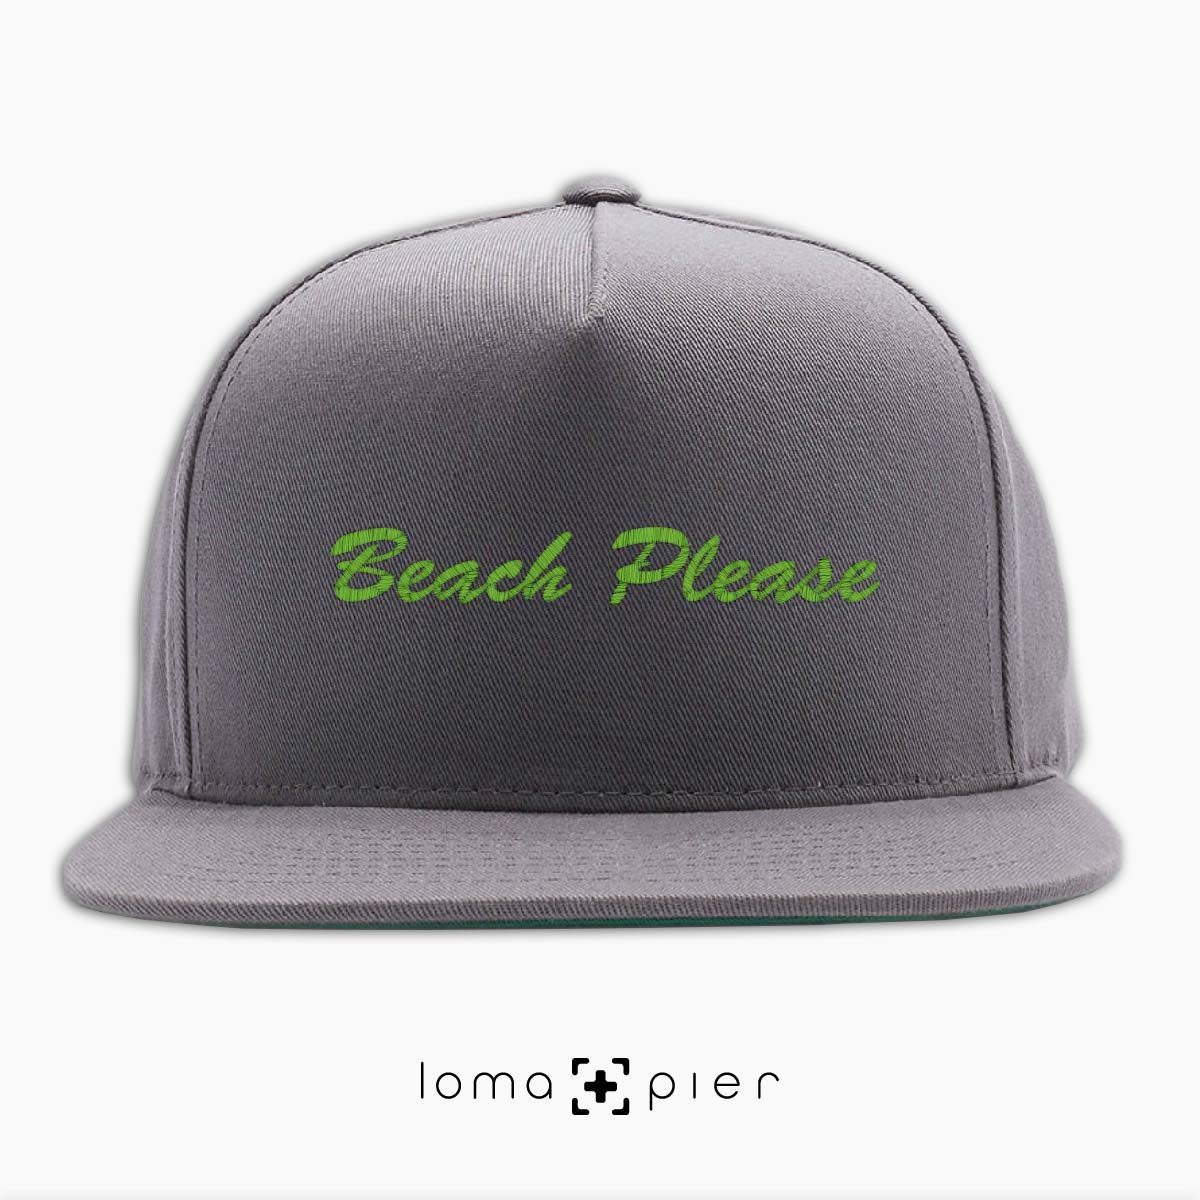 BEACH PLEASE embroidered on a grey classic snapback hat with lime green thread by loma+pier hat store